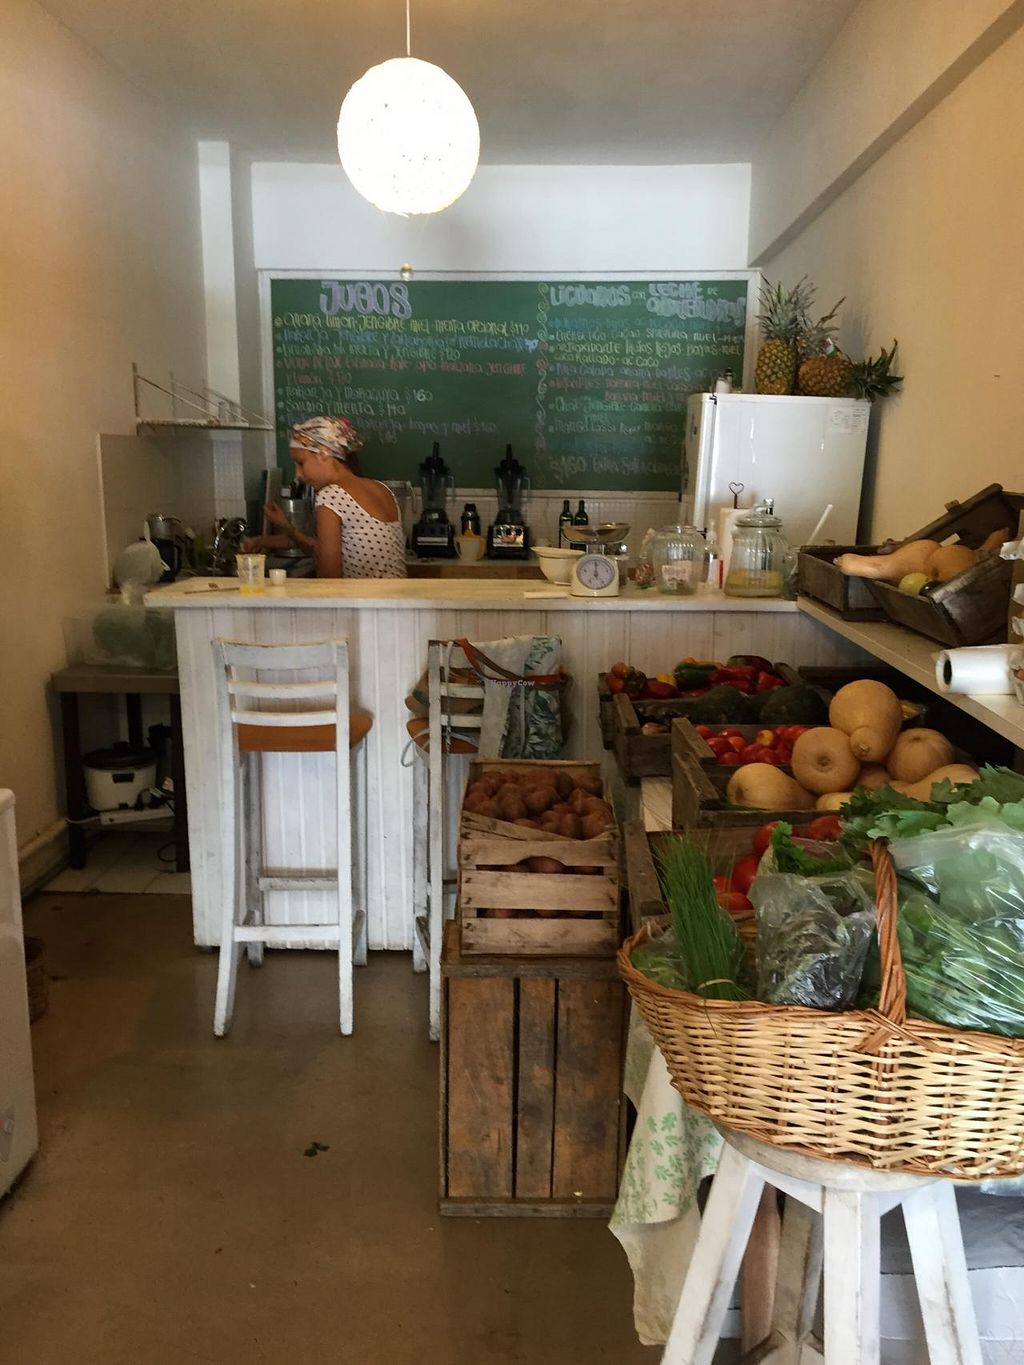 """Photo of Mercado Verde  by <a href=""""/members/profile/cuckooworld"""">cuckooworld</a> <br/>Juice bar and also small vegan pizzas and sandwiches. There is also organic produce available <br/> February 20, 2015  - <a href='/contact/abuse/image/44537/93595'>Report</a>"""